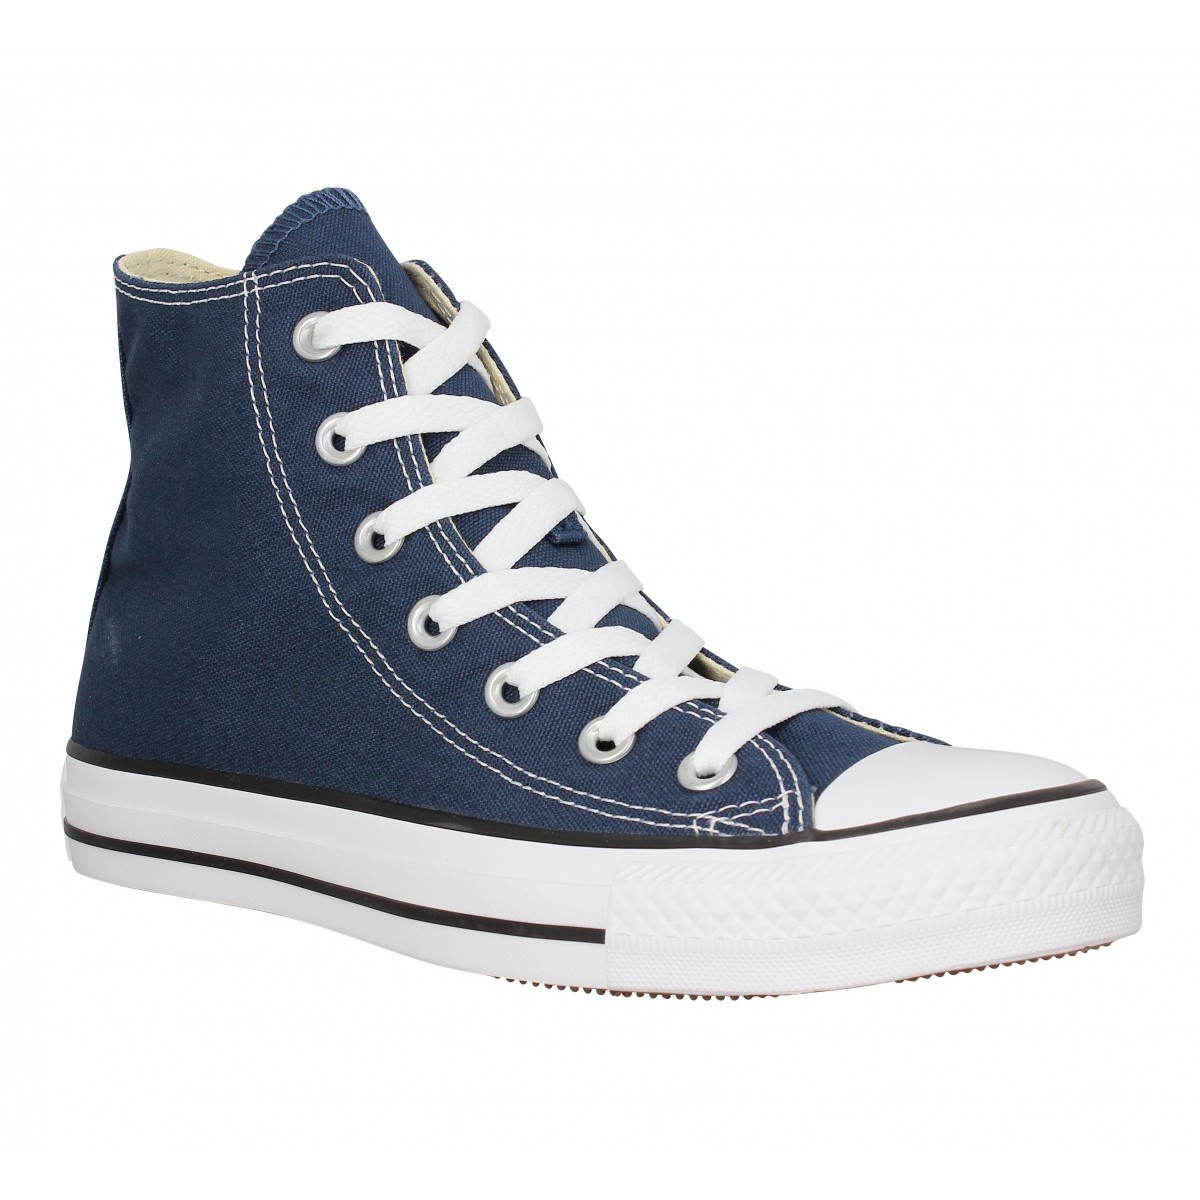 Baskets CONVERSE Chuck Taylor All Star Hi toile Femme Marine